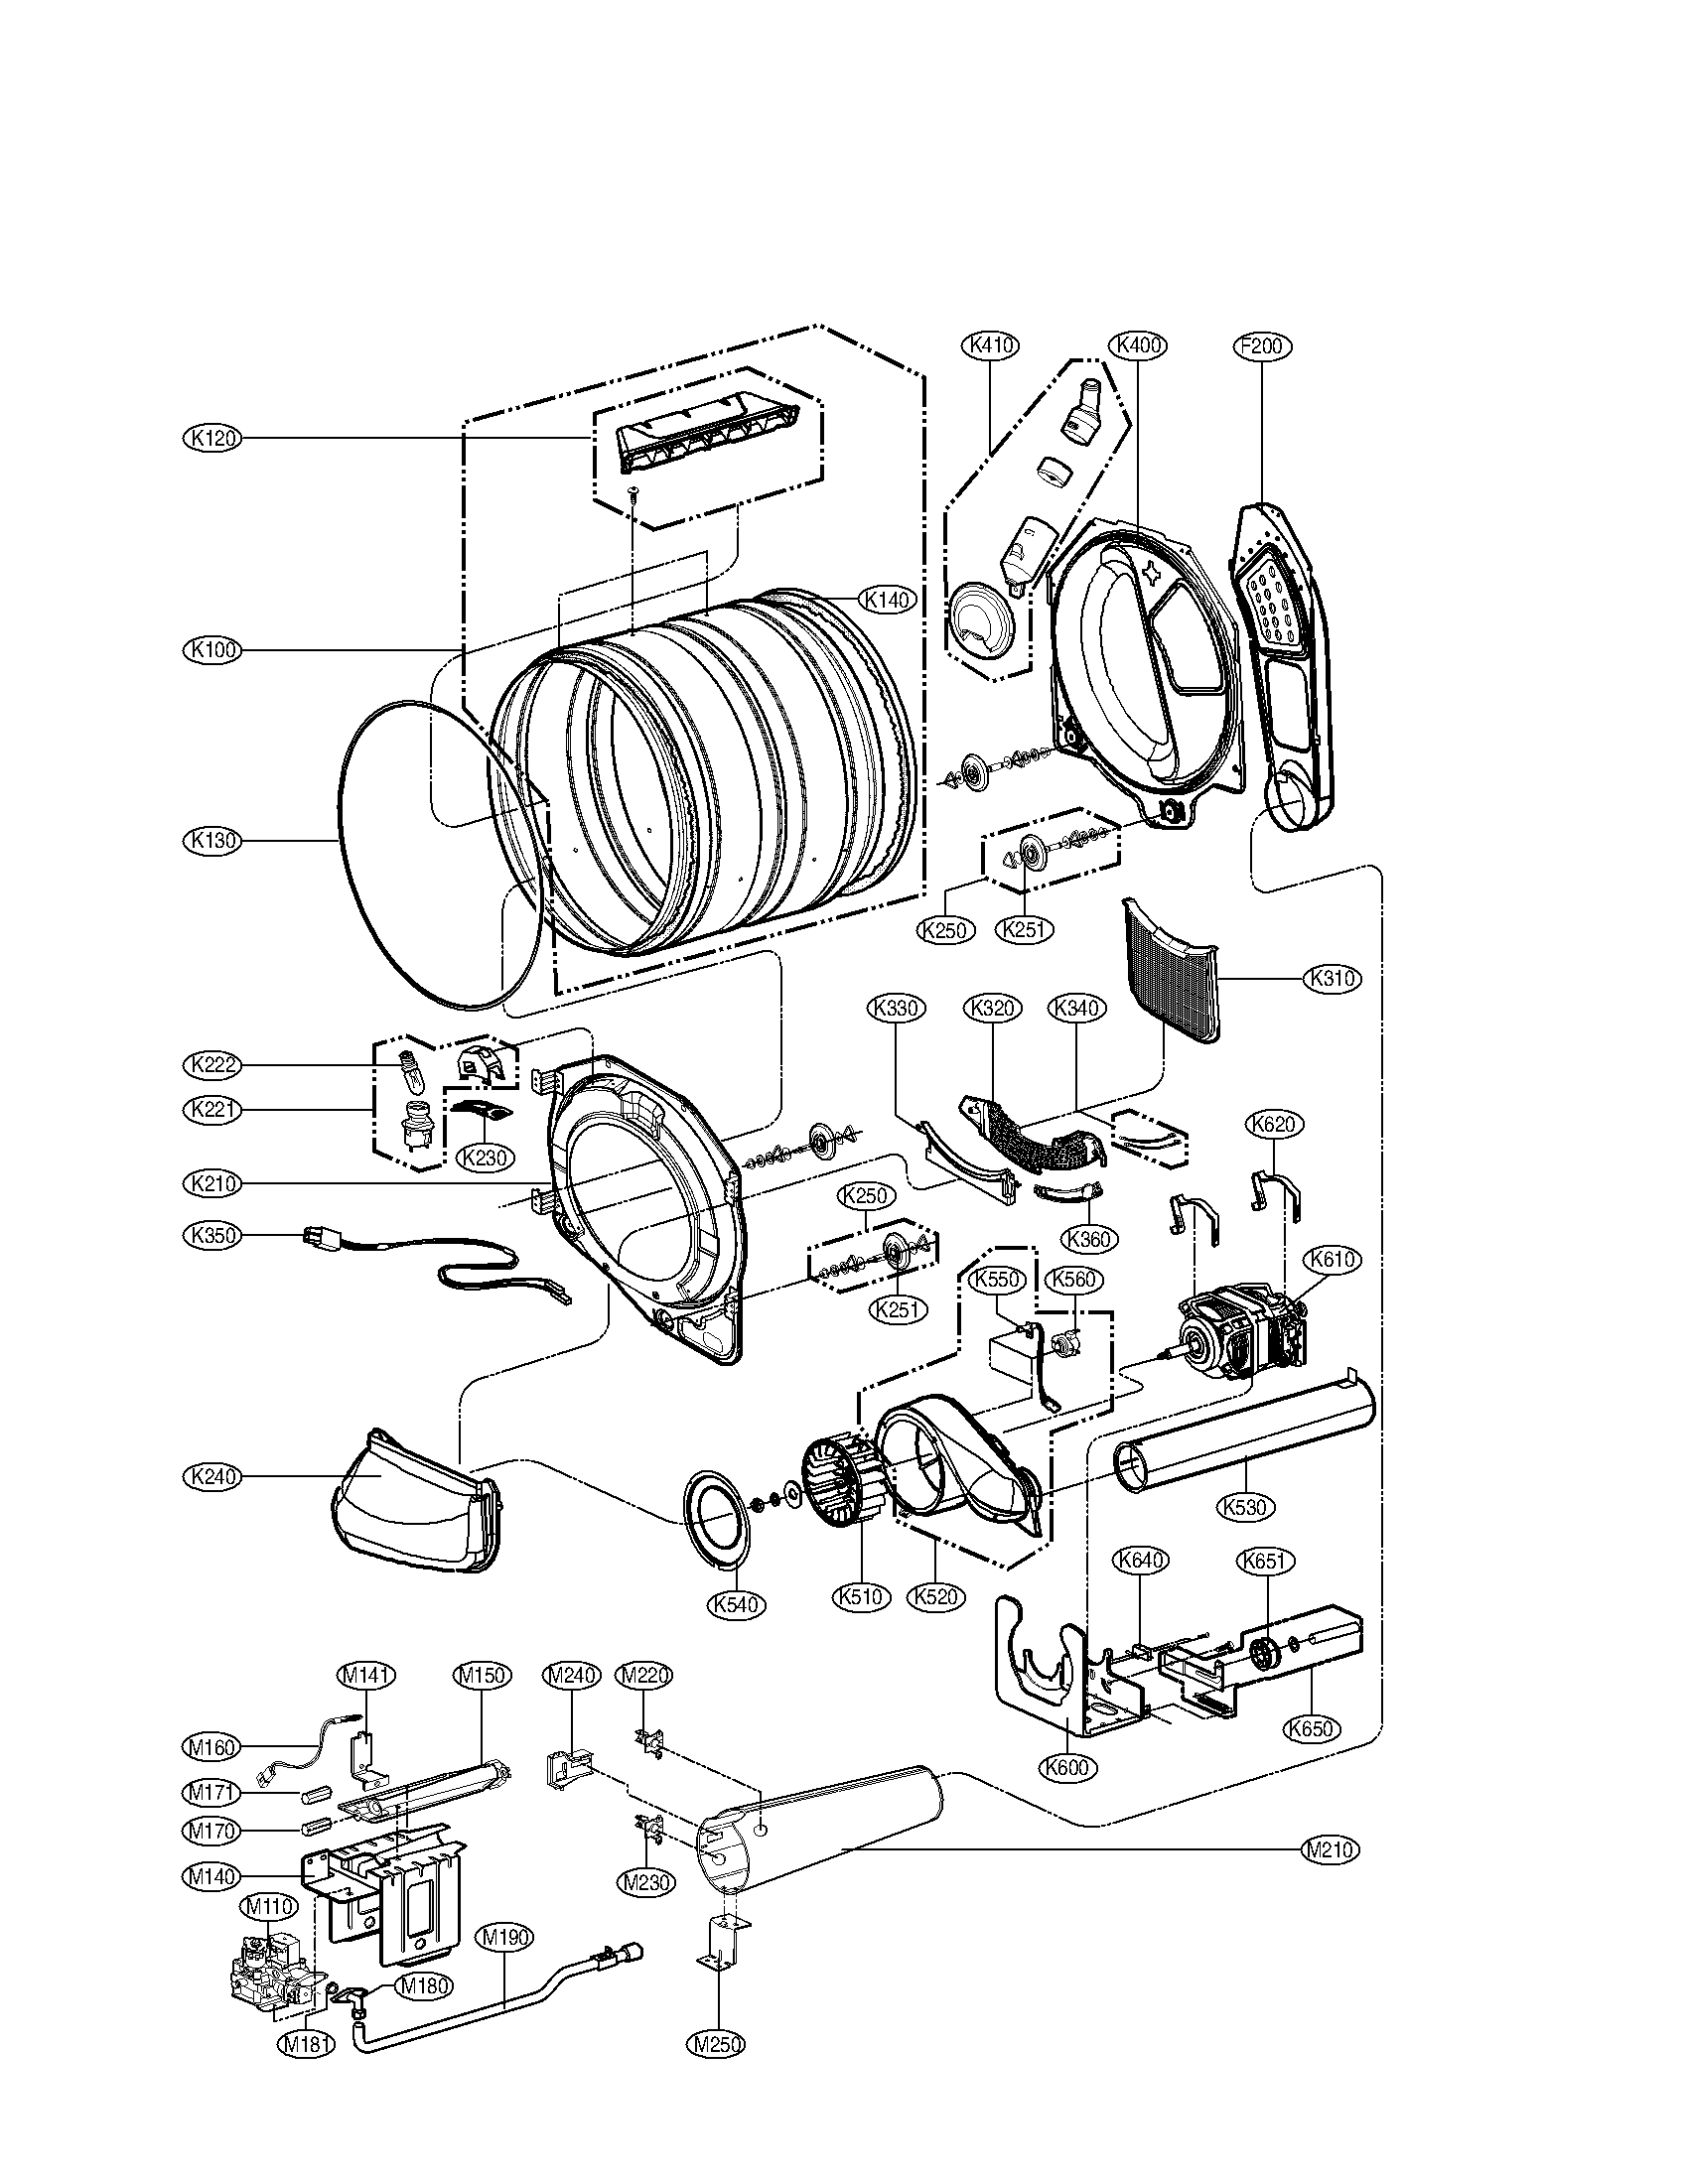 LG DLGX8388NM drum and motor assembly parts diagram